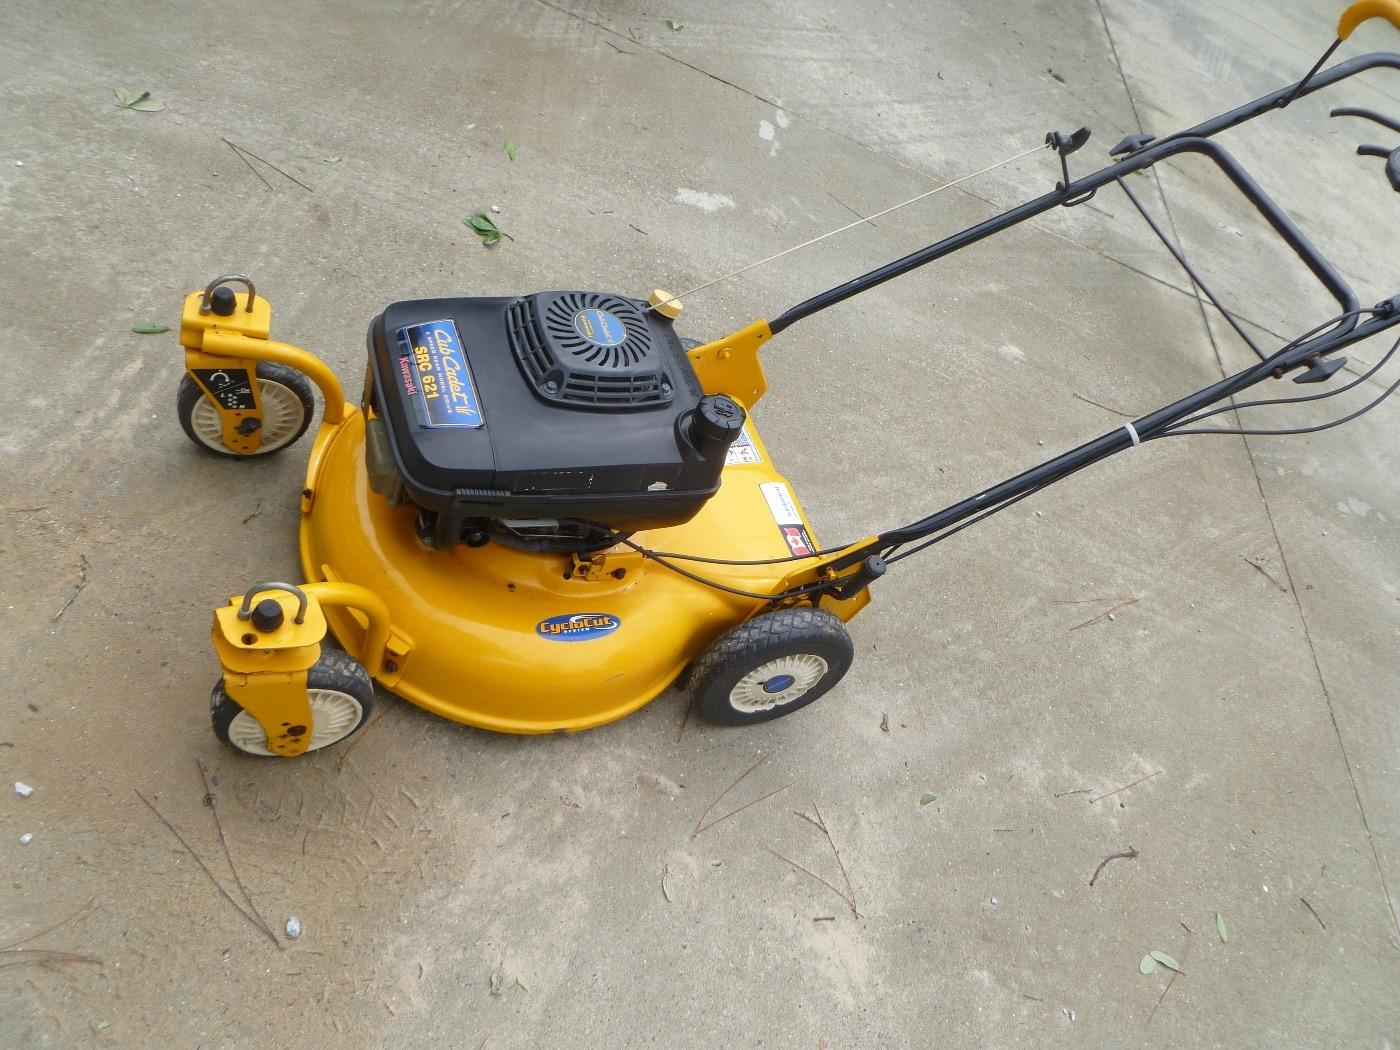 Find More Cub Cadet Src 621 6 Speed Self Propelled Mower For Sale At Up To 90 Off